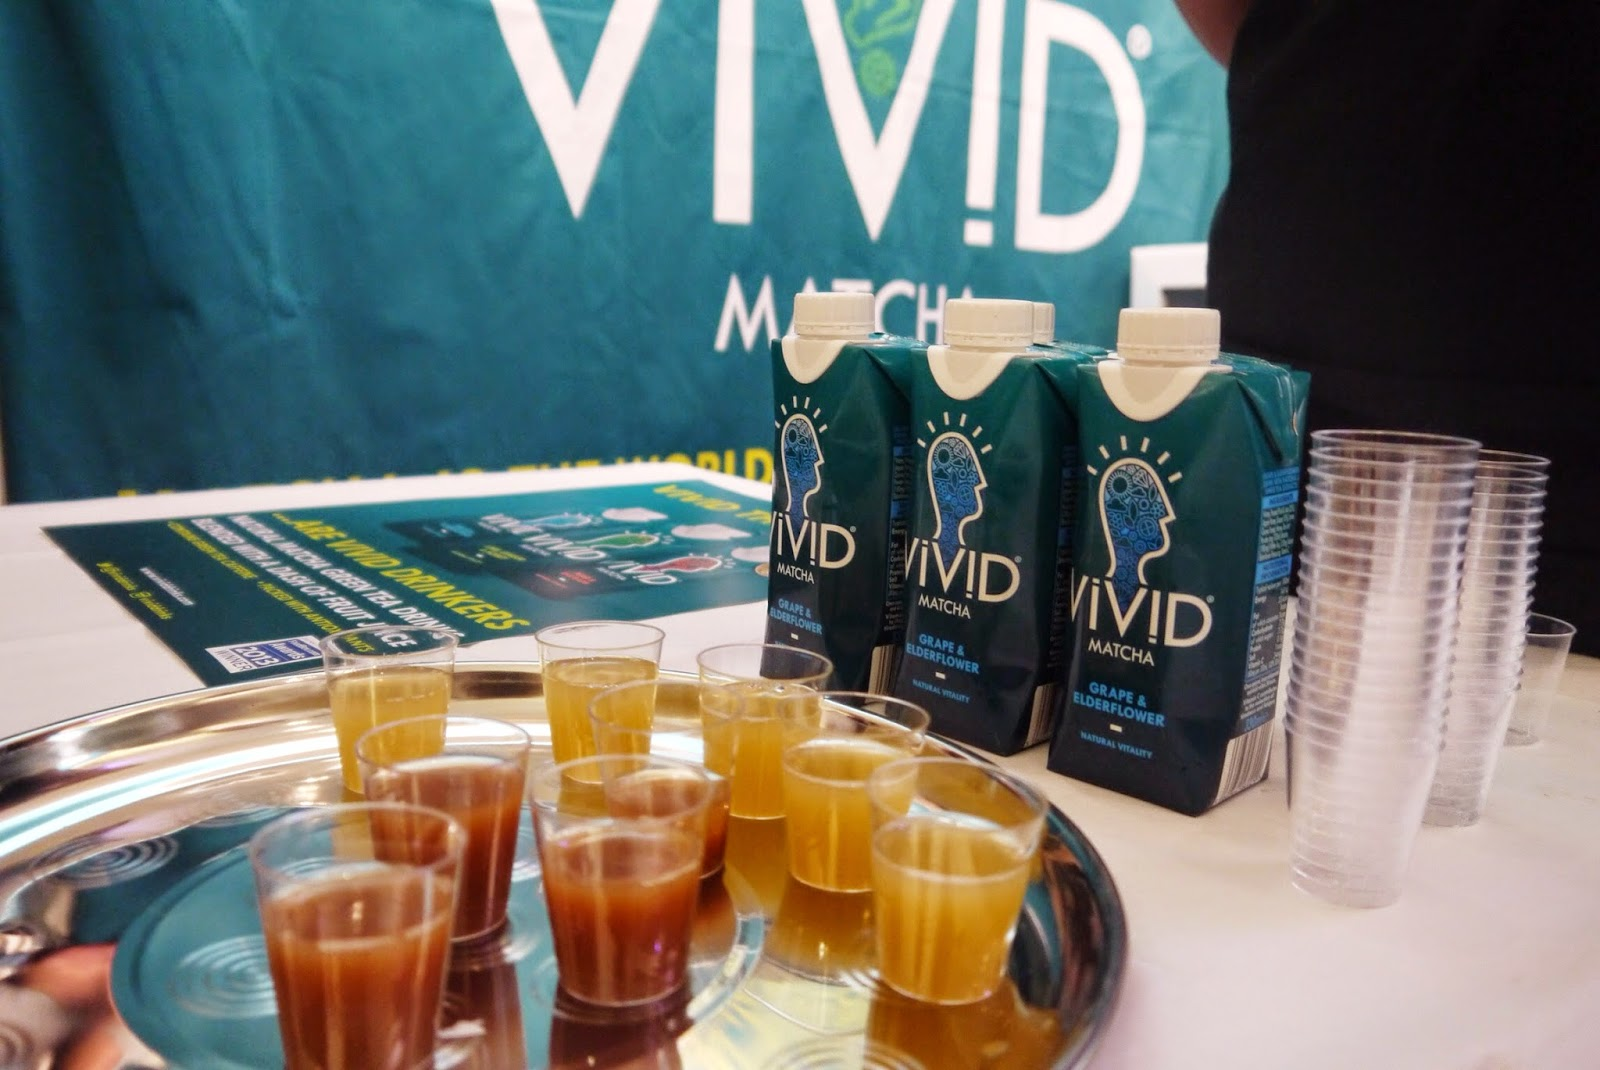 Vivid Matcha Drinks at Be:Fit London